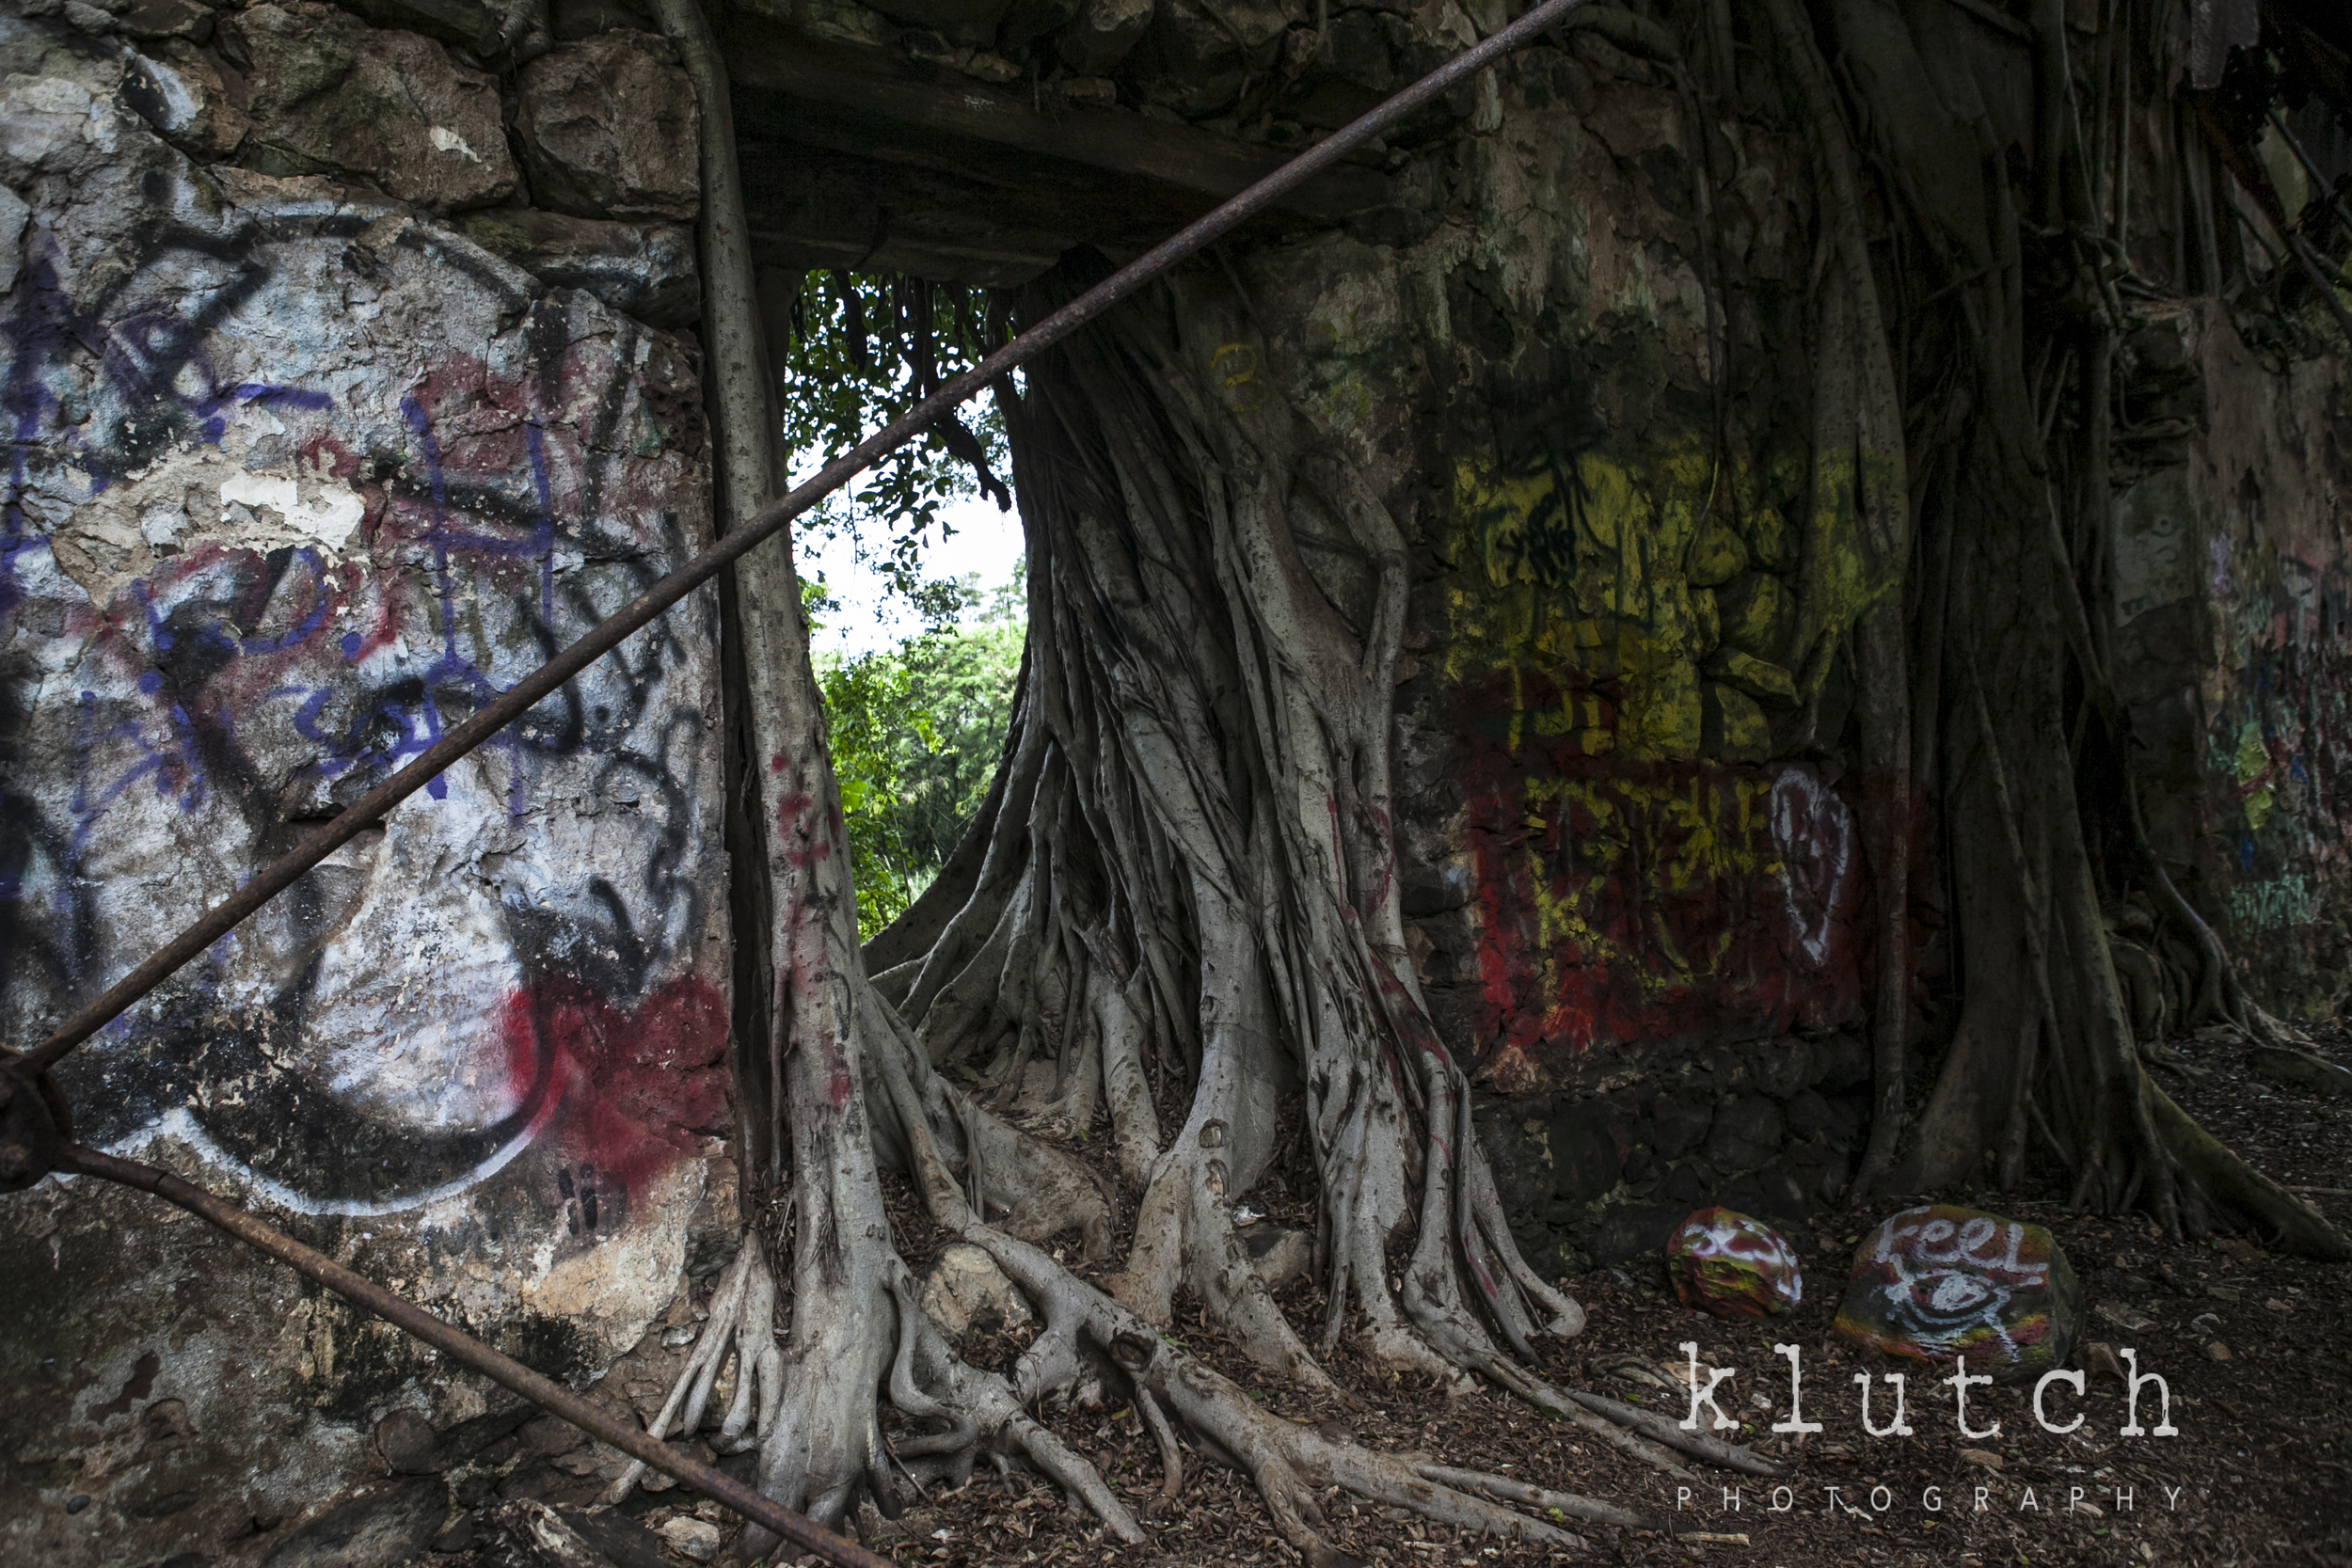 Klutch photography, maui, paia, abandoned building, abandoned ruins, vancouver family photographer, life unscripted-0750.jpg